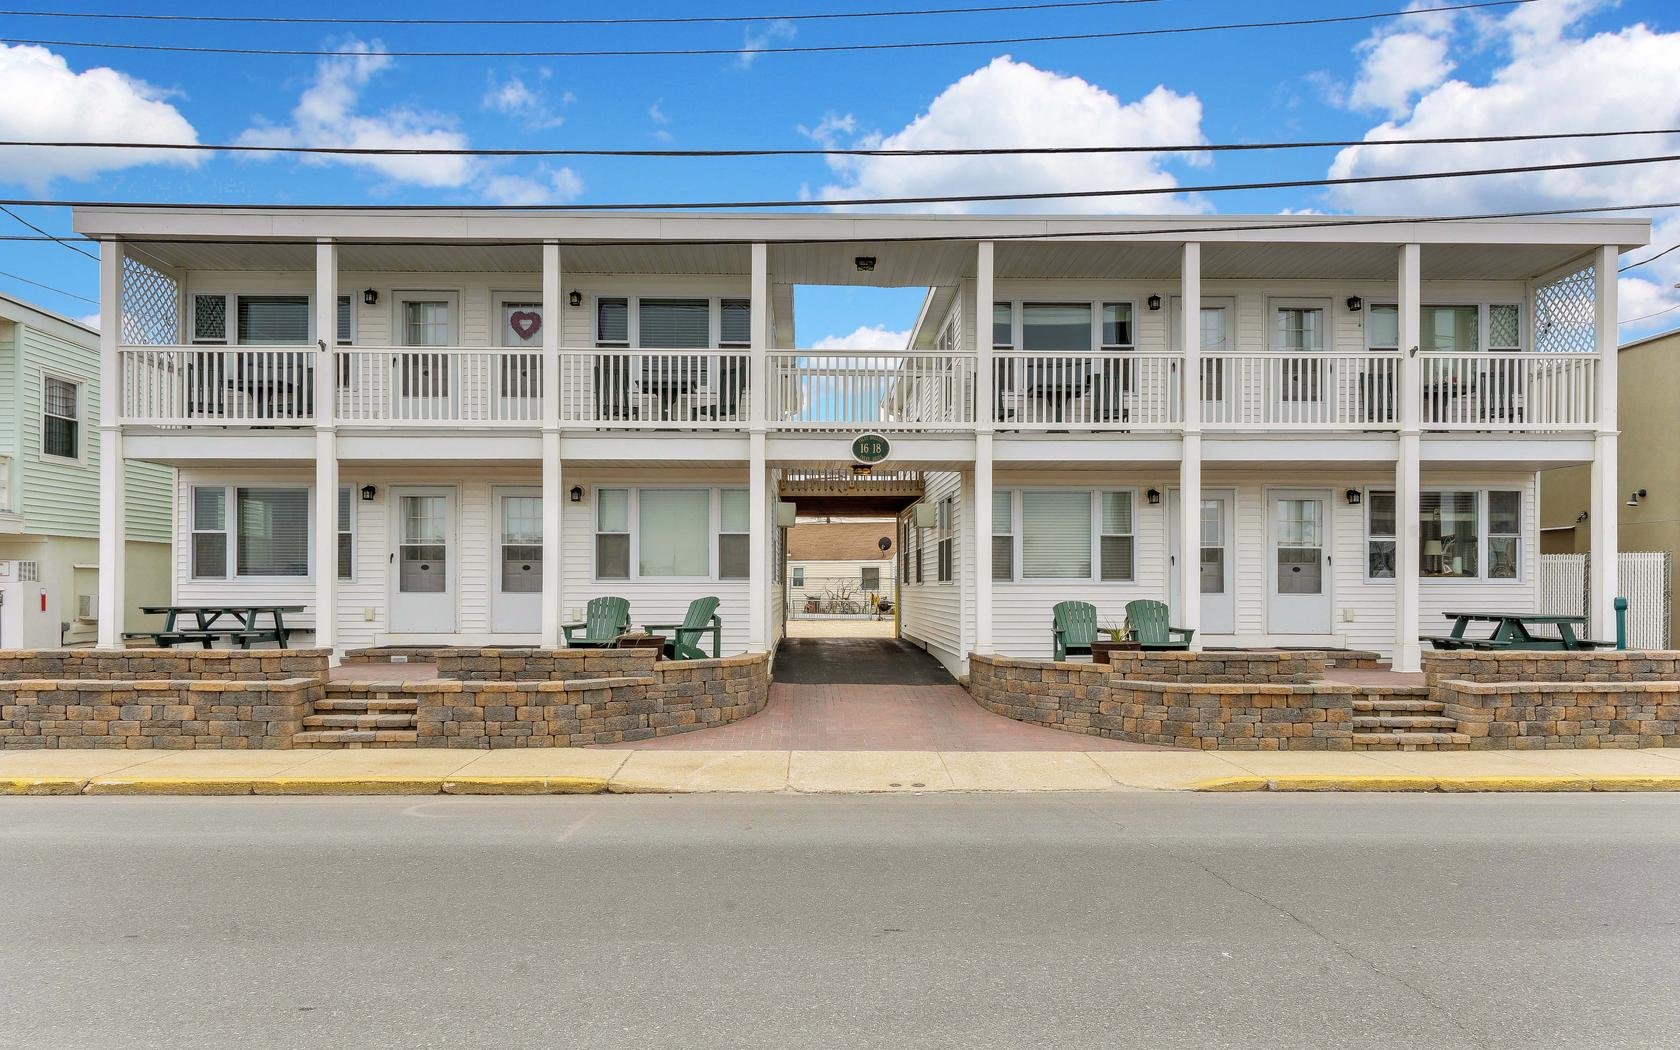 Condominium for Sale at Serene Waterfront Condo 16-18 Inlet Dr 3 Point Pleasant Beach, New Jersey 08742 United States